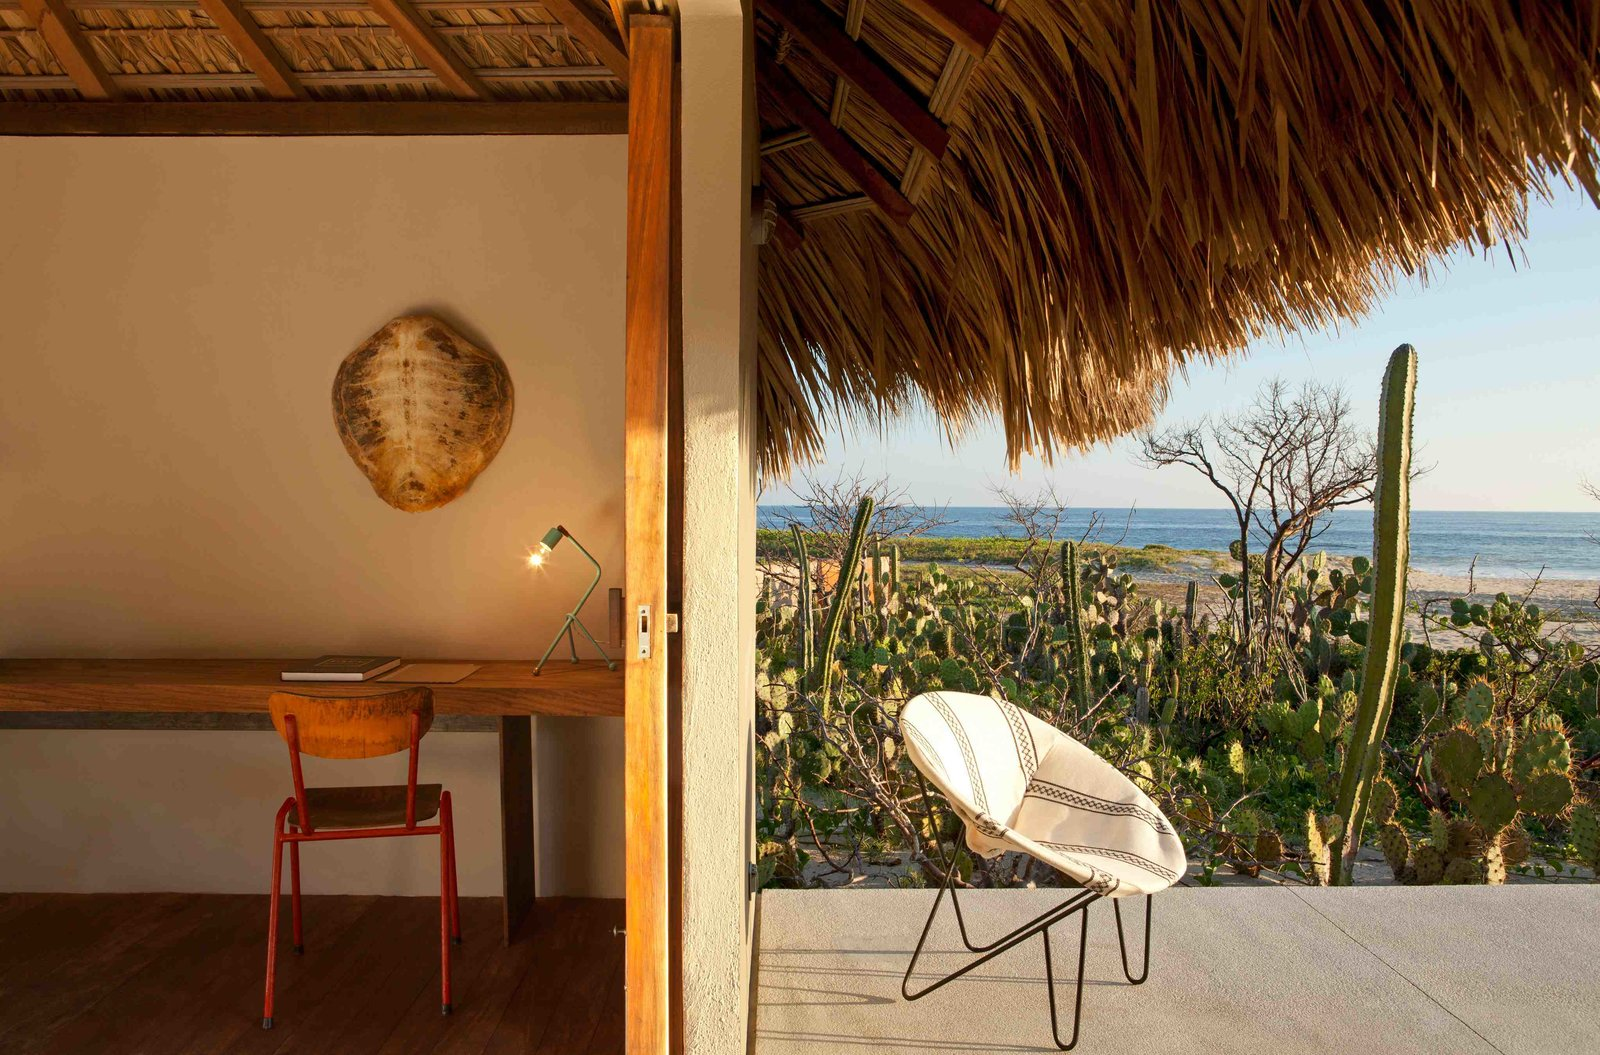 Architect Federico Rivera Rio updated traditional Oaxacan beach huts with palapa roofs, transforming it into stylish, minimalist bungalow hotel rooms with stucco walls, wooden floors and polished concrete bathrooms.